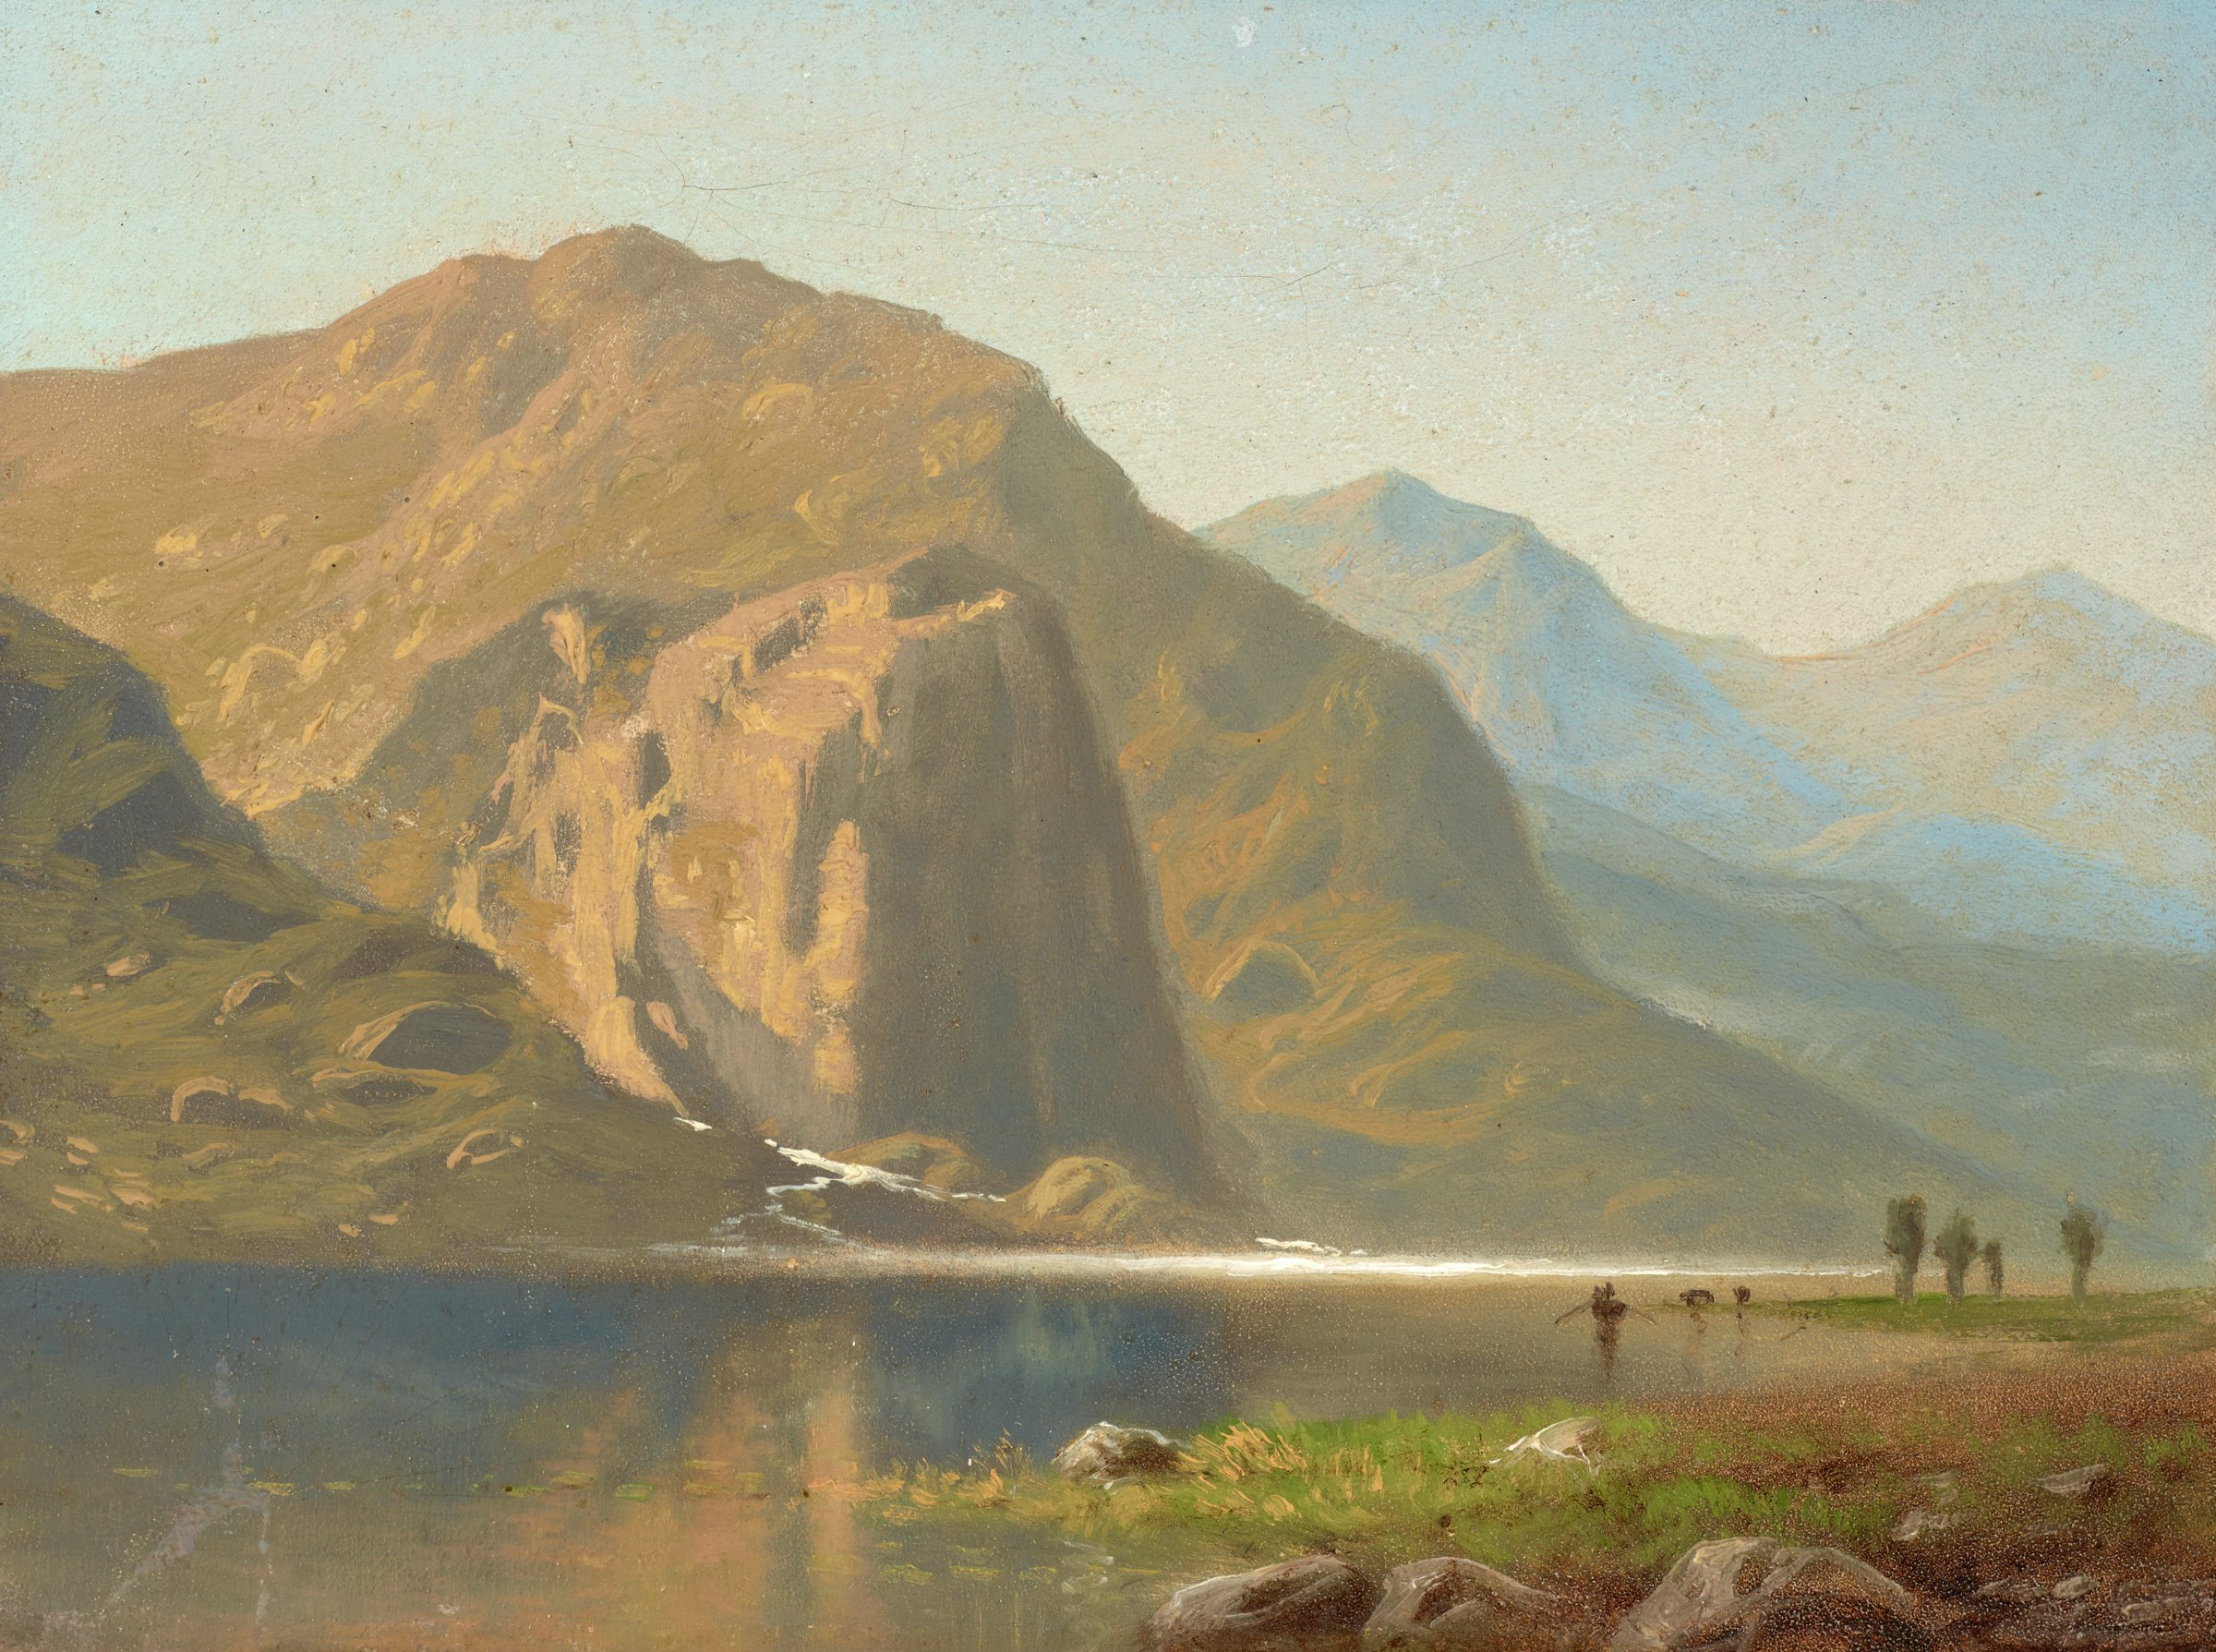 This small painting is a sketch of a mountainous landscape with a body of water in the foreground and middleground. In the lower right corner of the painting is a u-shaped coastline with scattered rocks and a few small trees in the distance. The body of water extends to the base of mountains that rise vertically from its shore. These mountains recede into the distance.